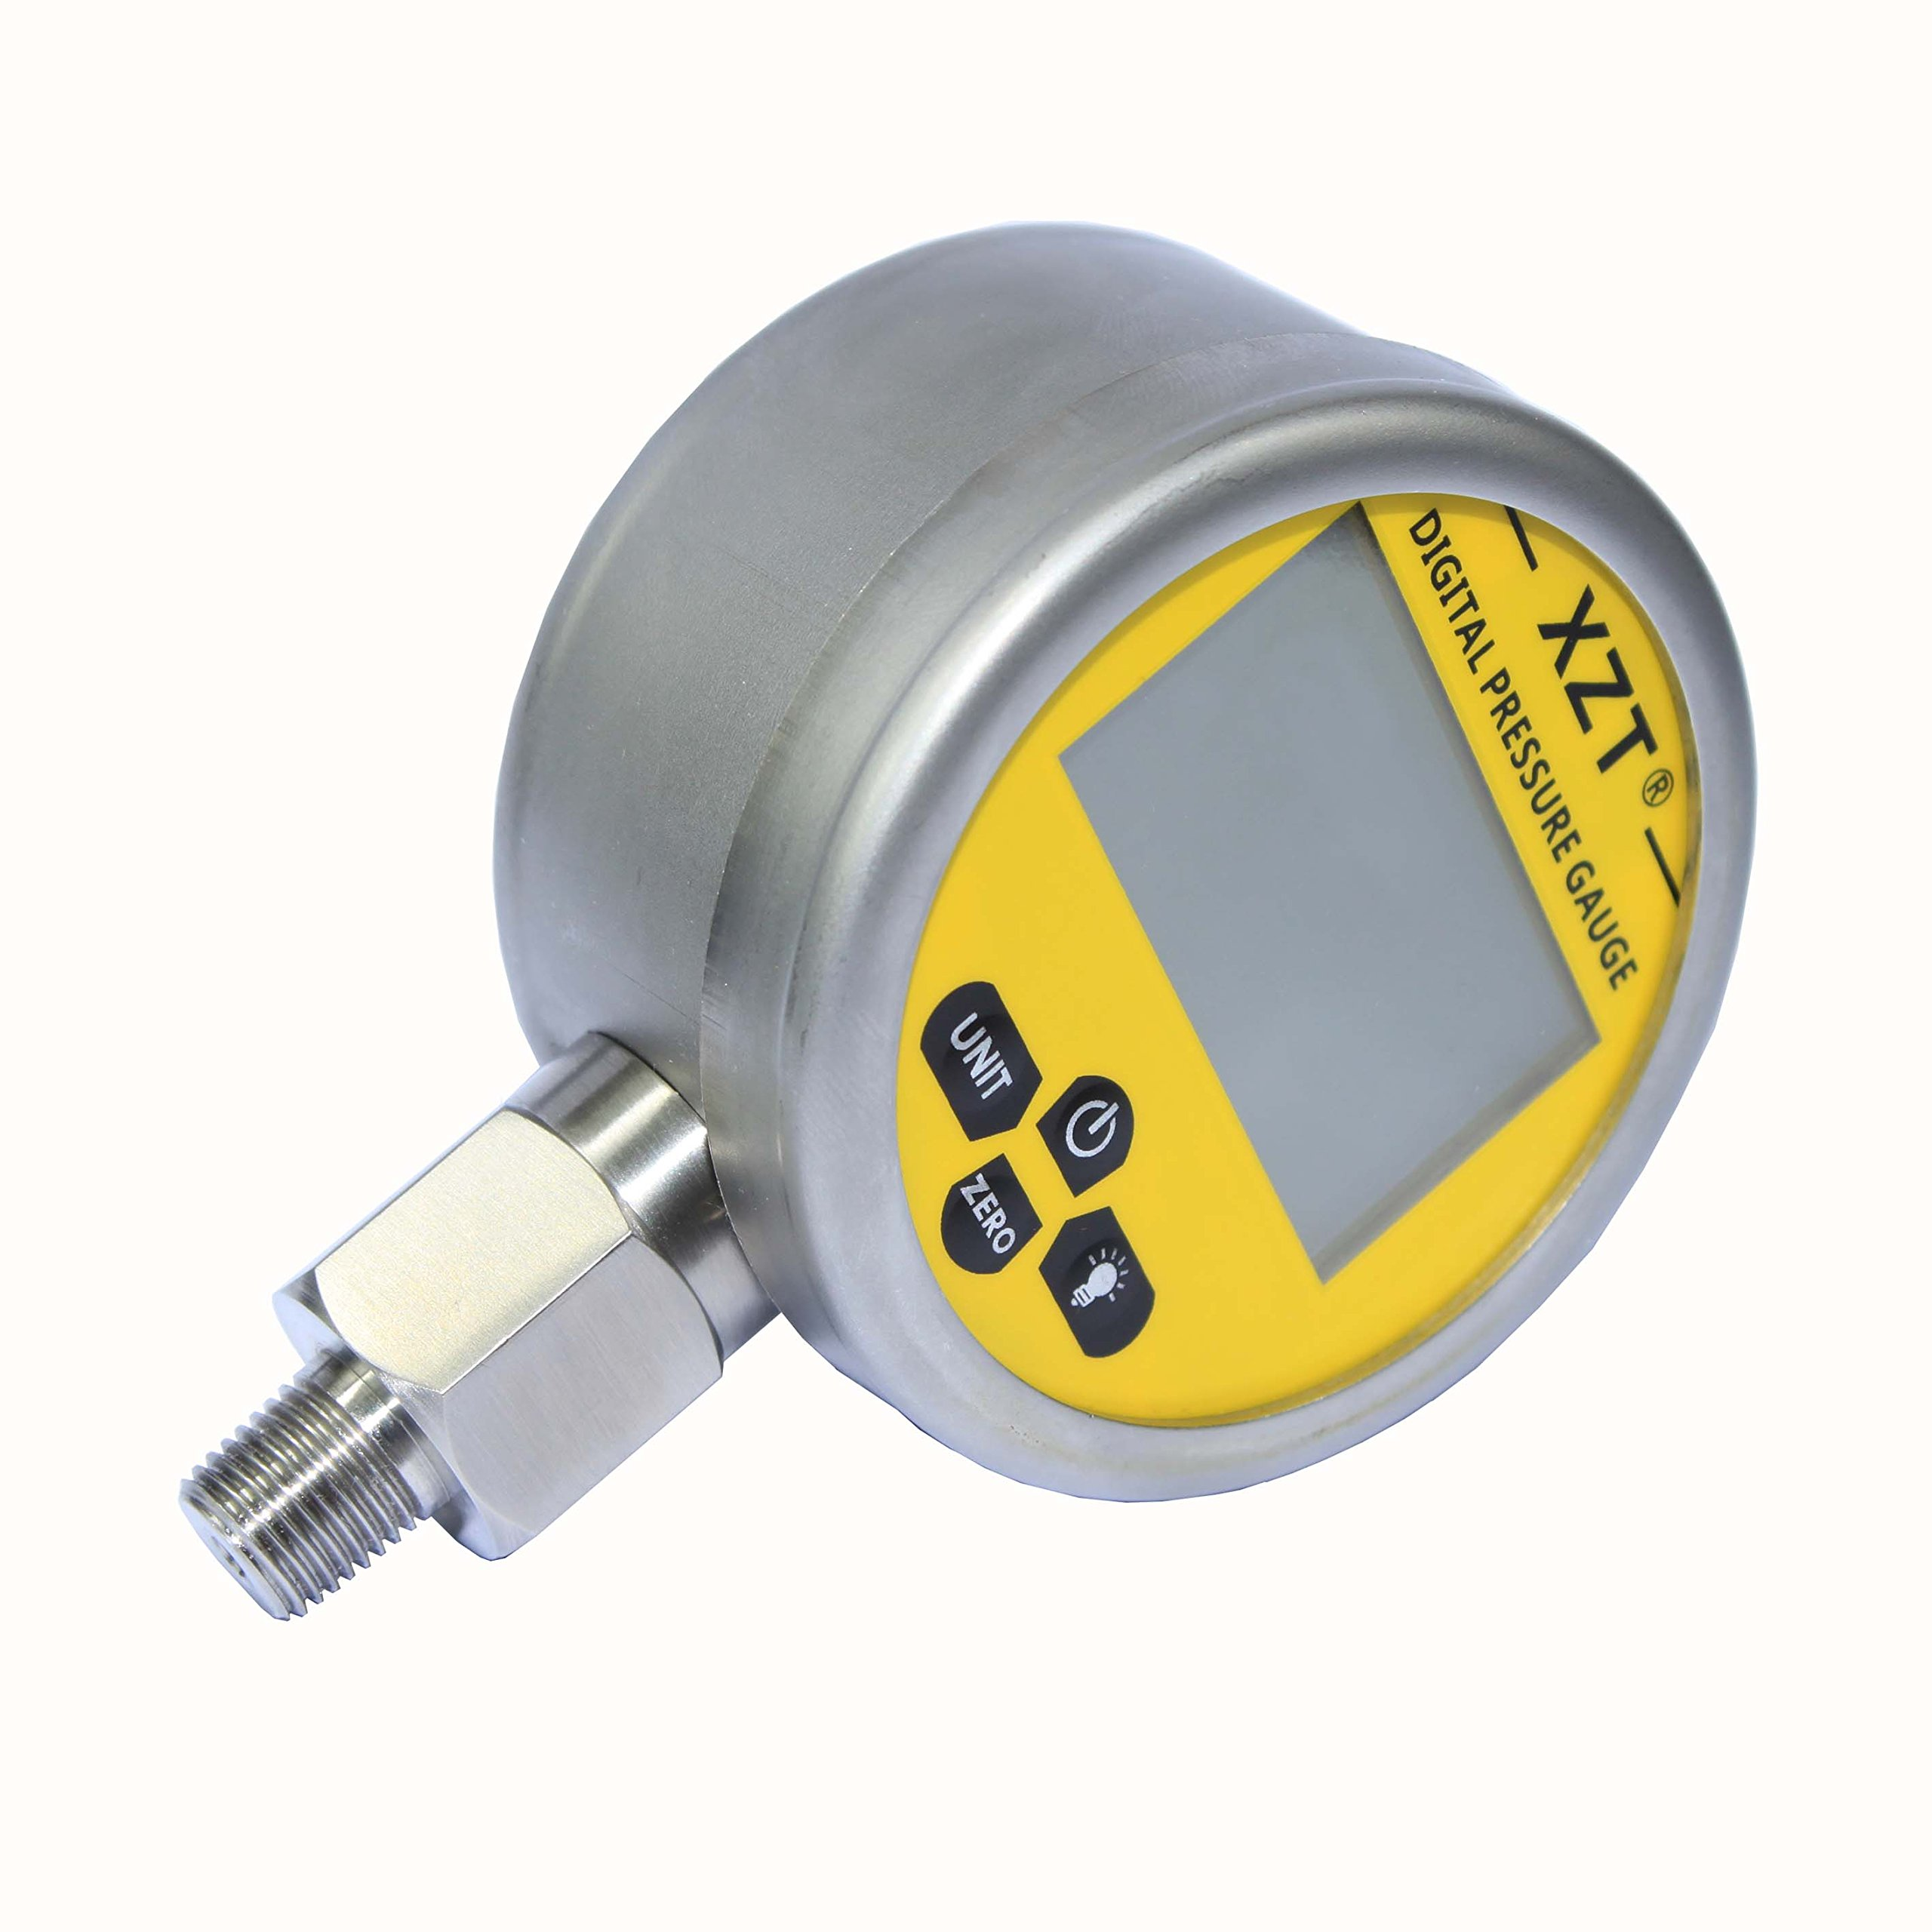 XZT Digital Hydraulic Pressure Gauge 10000psi/700bar-1/4npt-base Entry